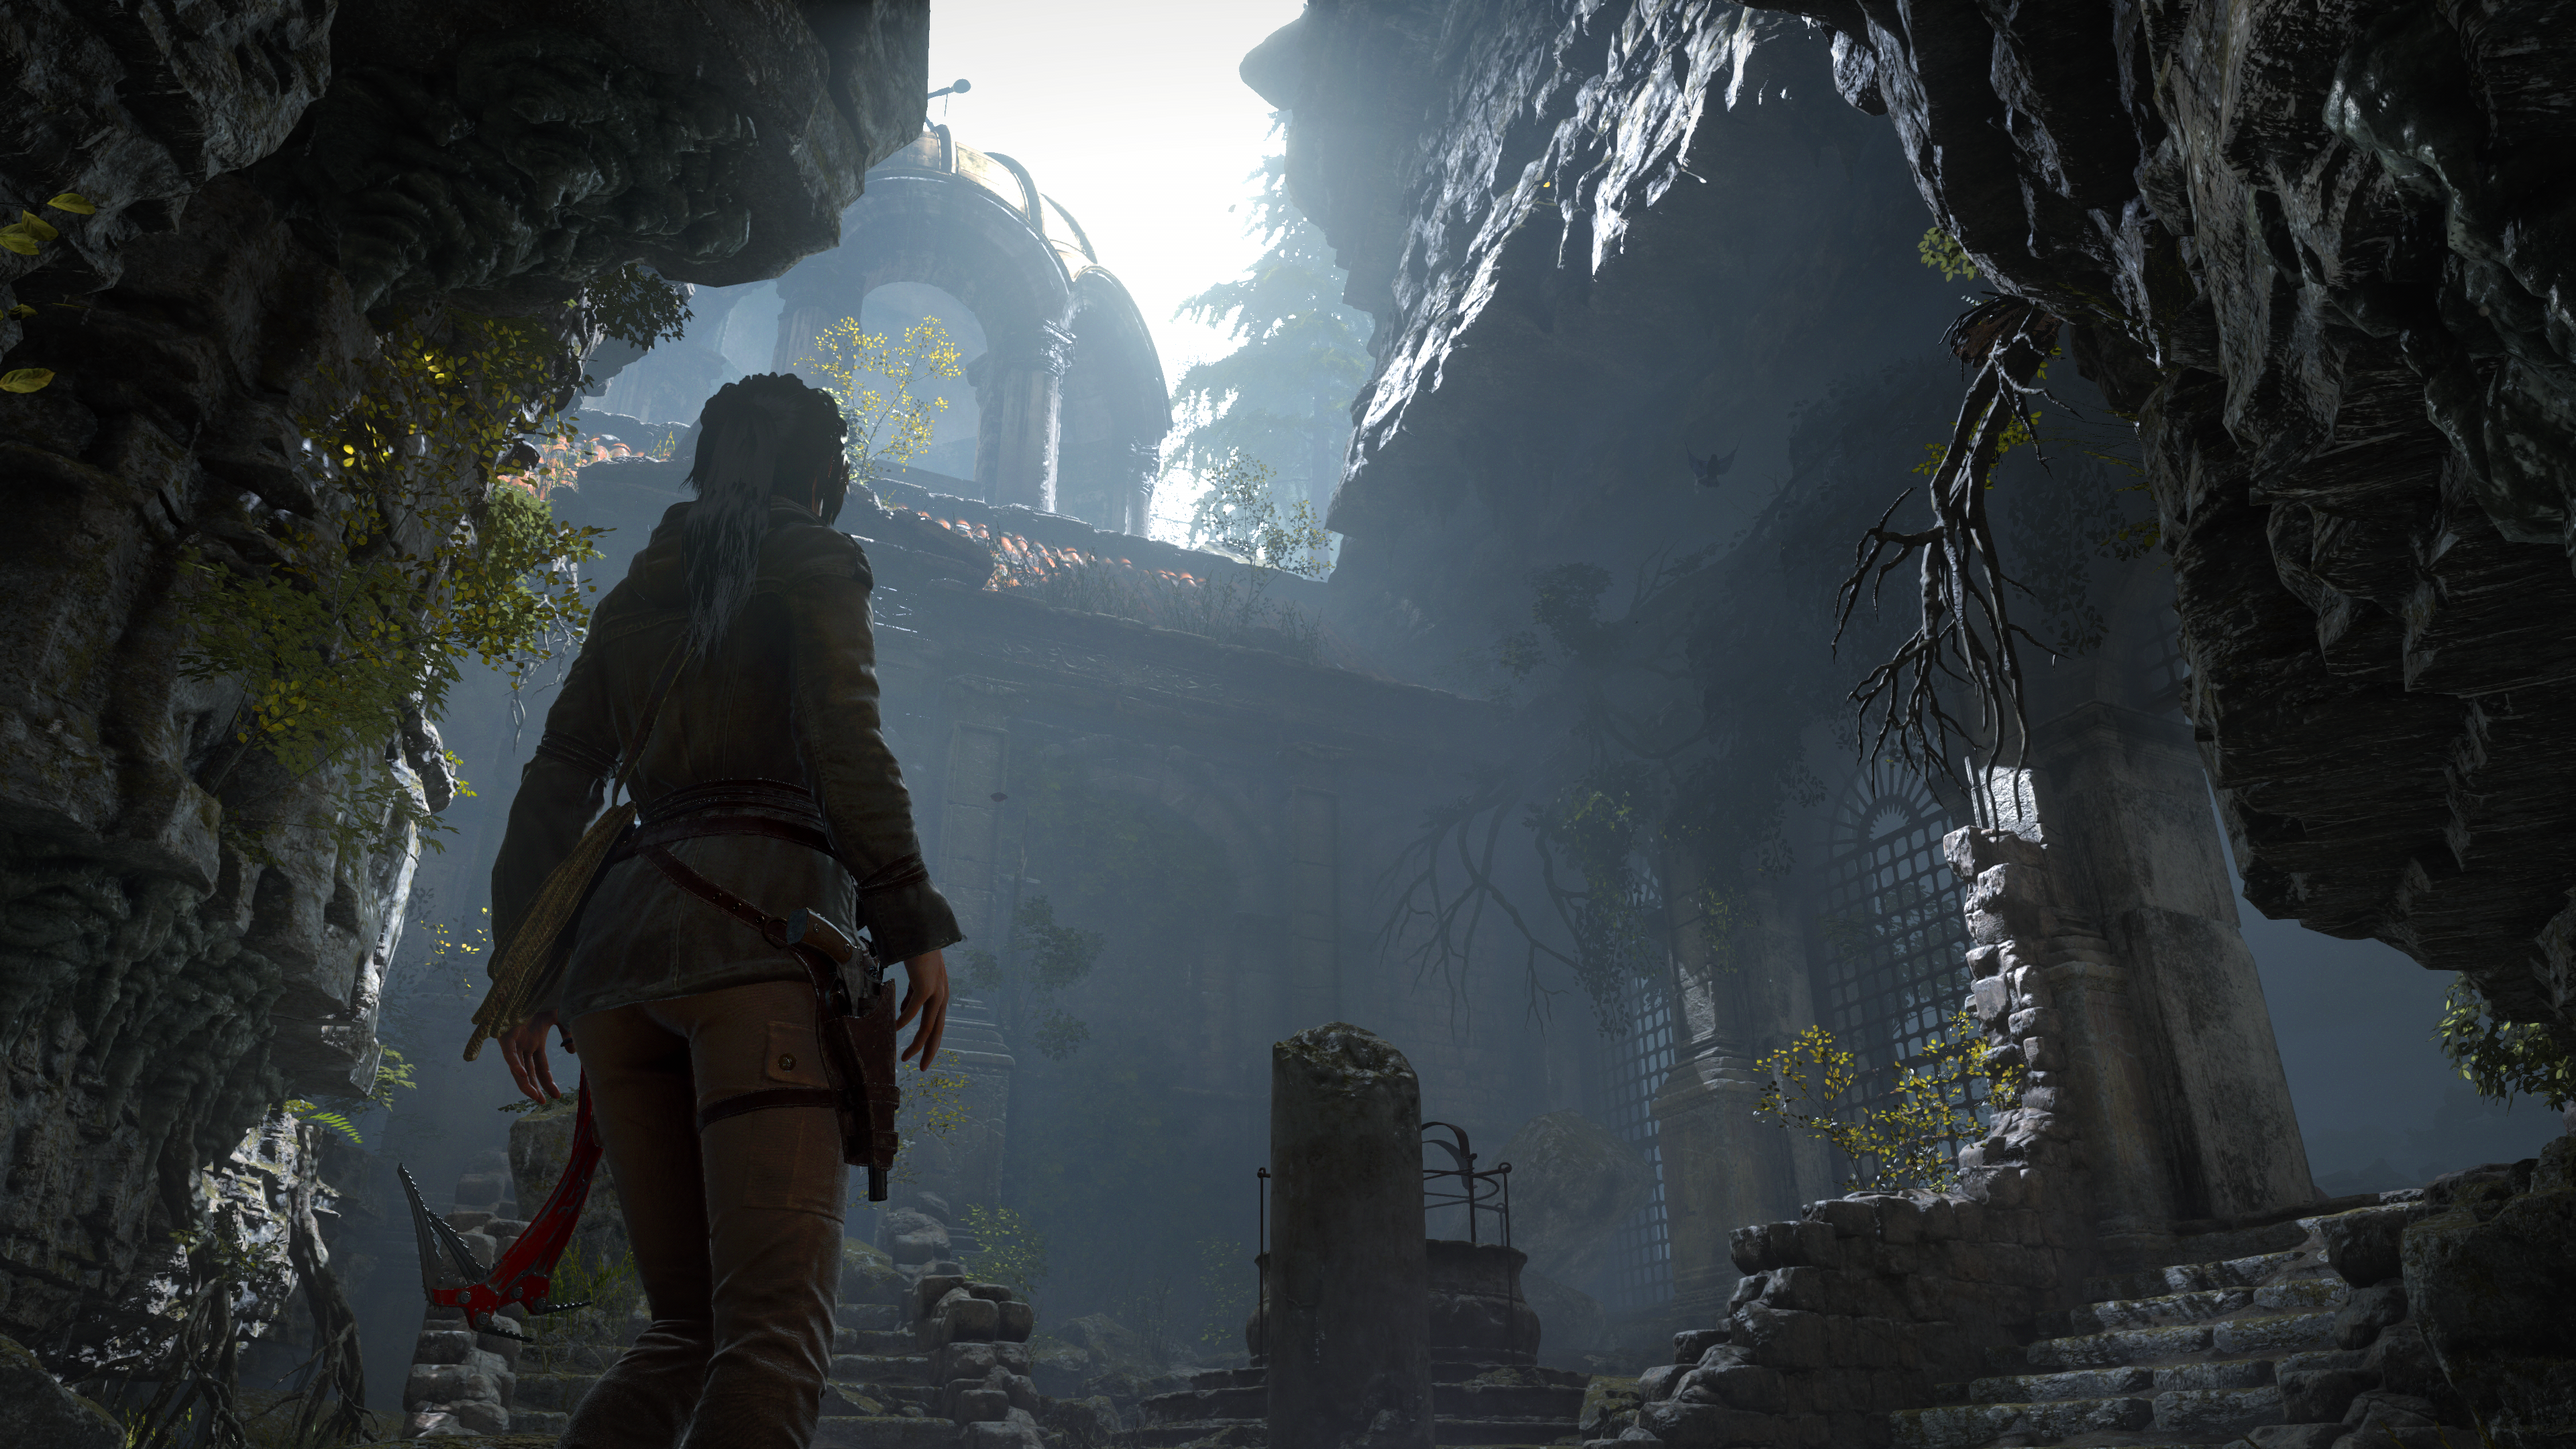 rise_of_the_tomb_raider_pc_announcement_screenshot_003_534313917.png